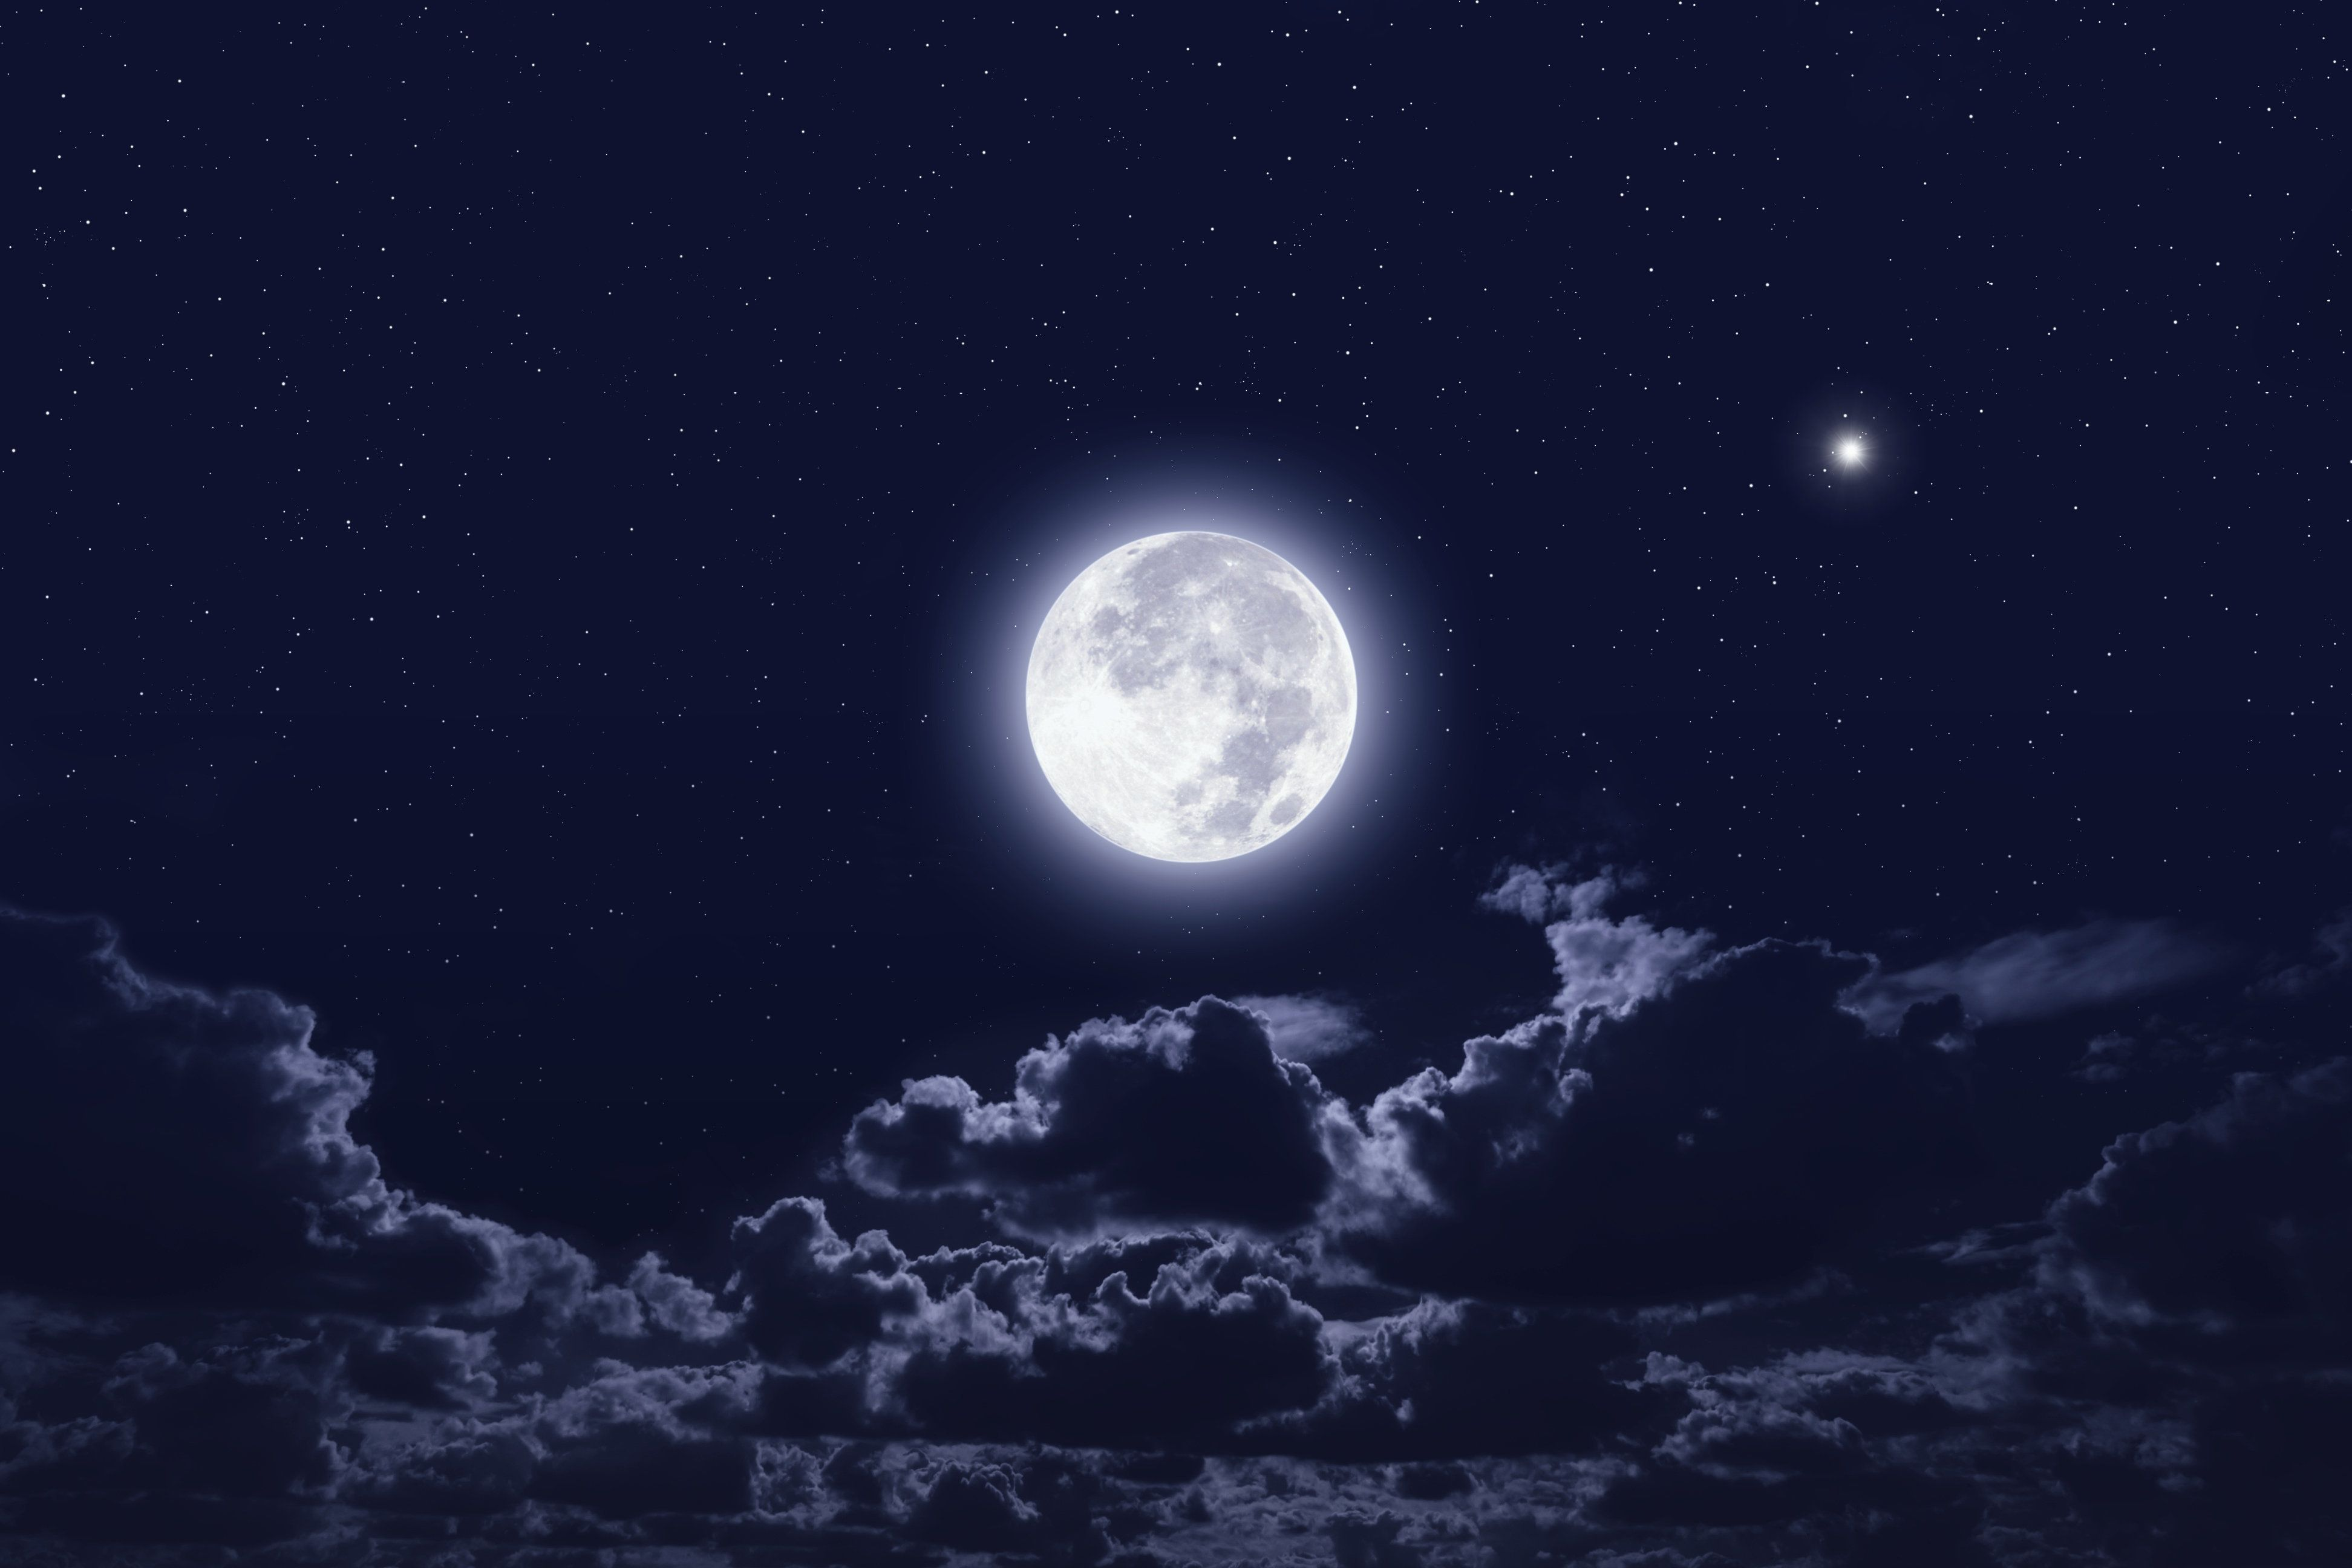 Full moon in dark night sky with stars and clouds. Elements of this image furnished by NASA